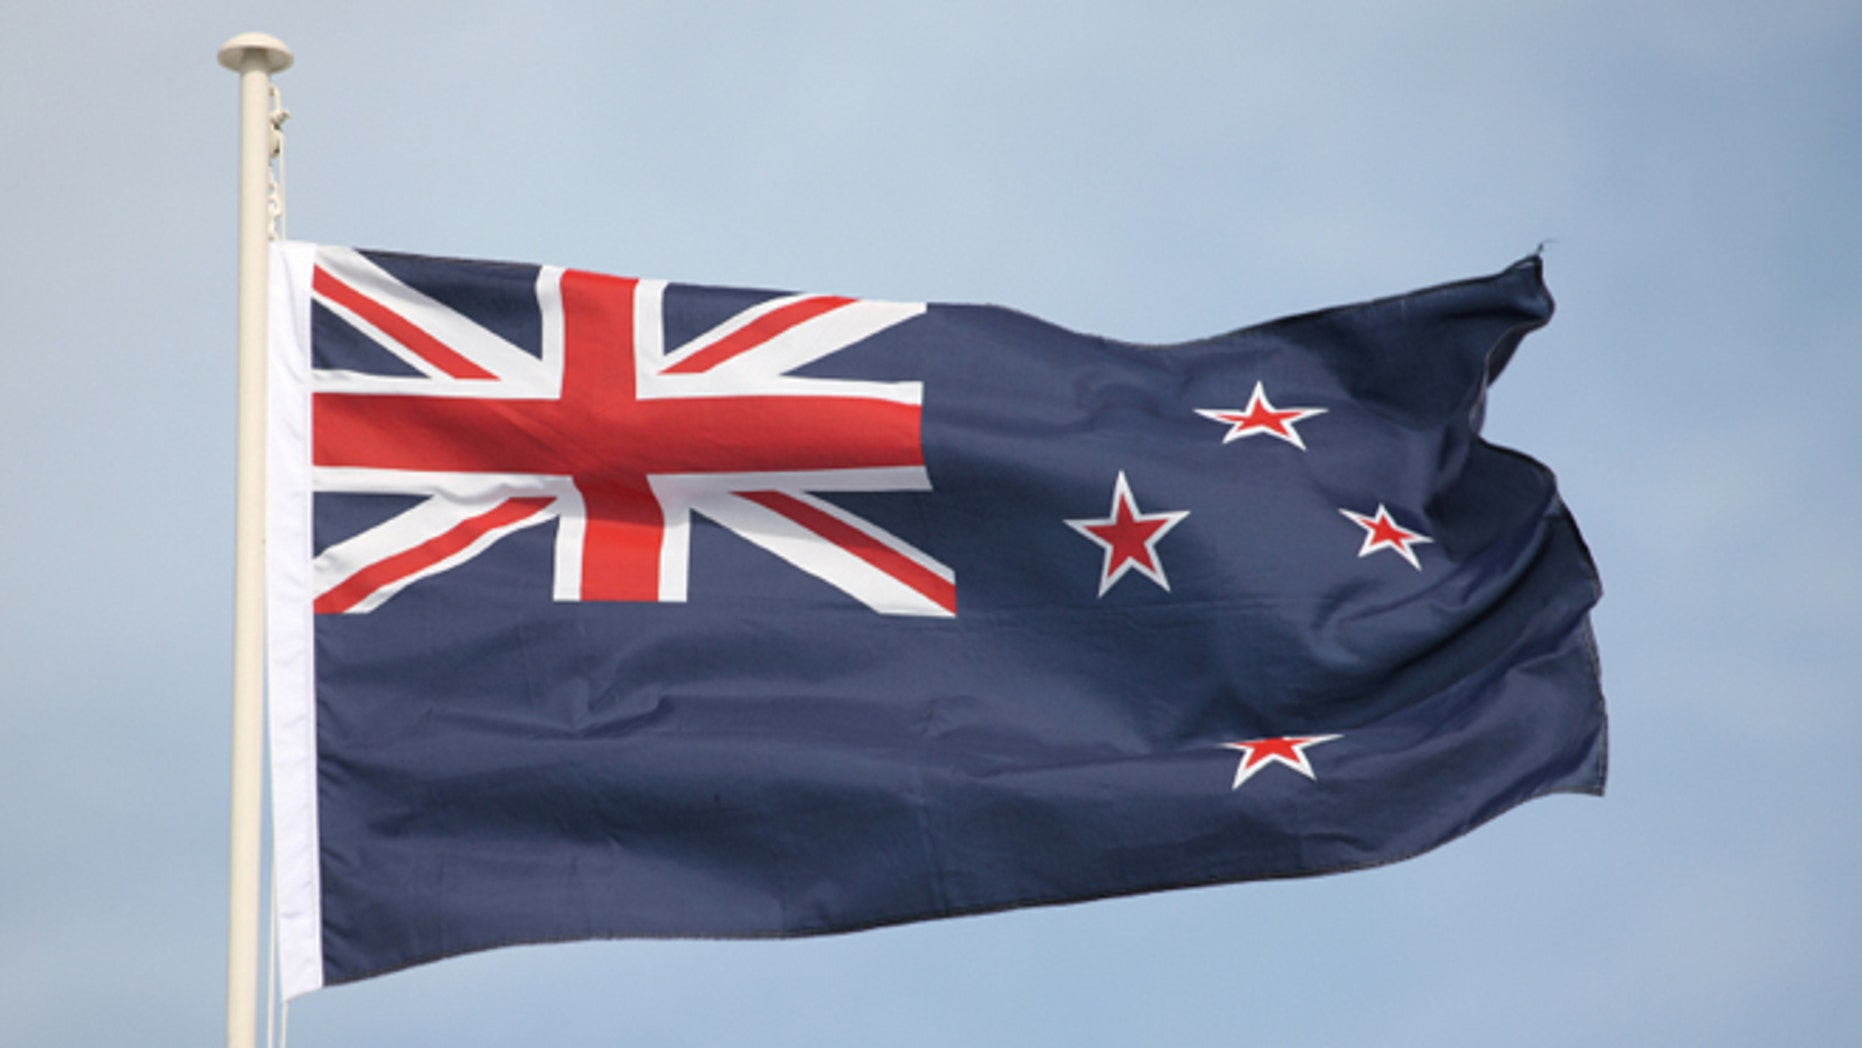 The New Zealand flag flying in strong wind. Some motion on flag edges.